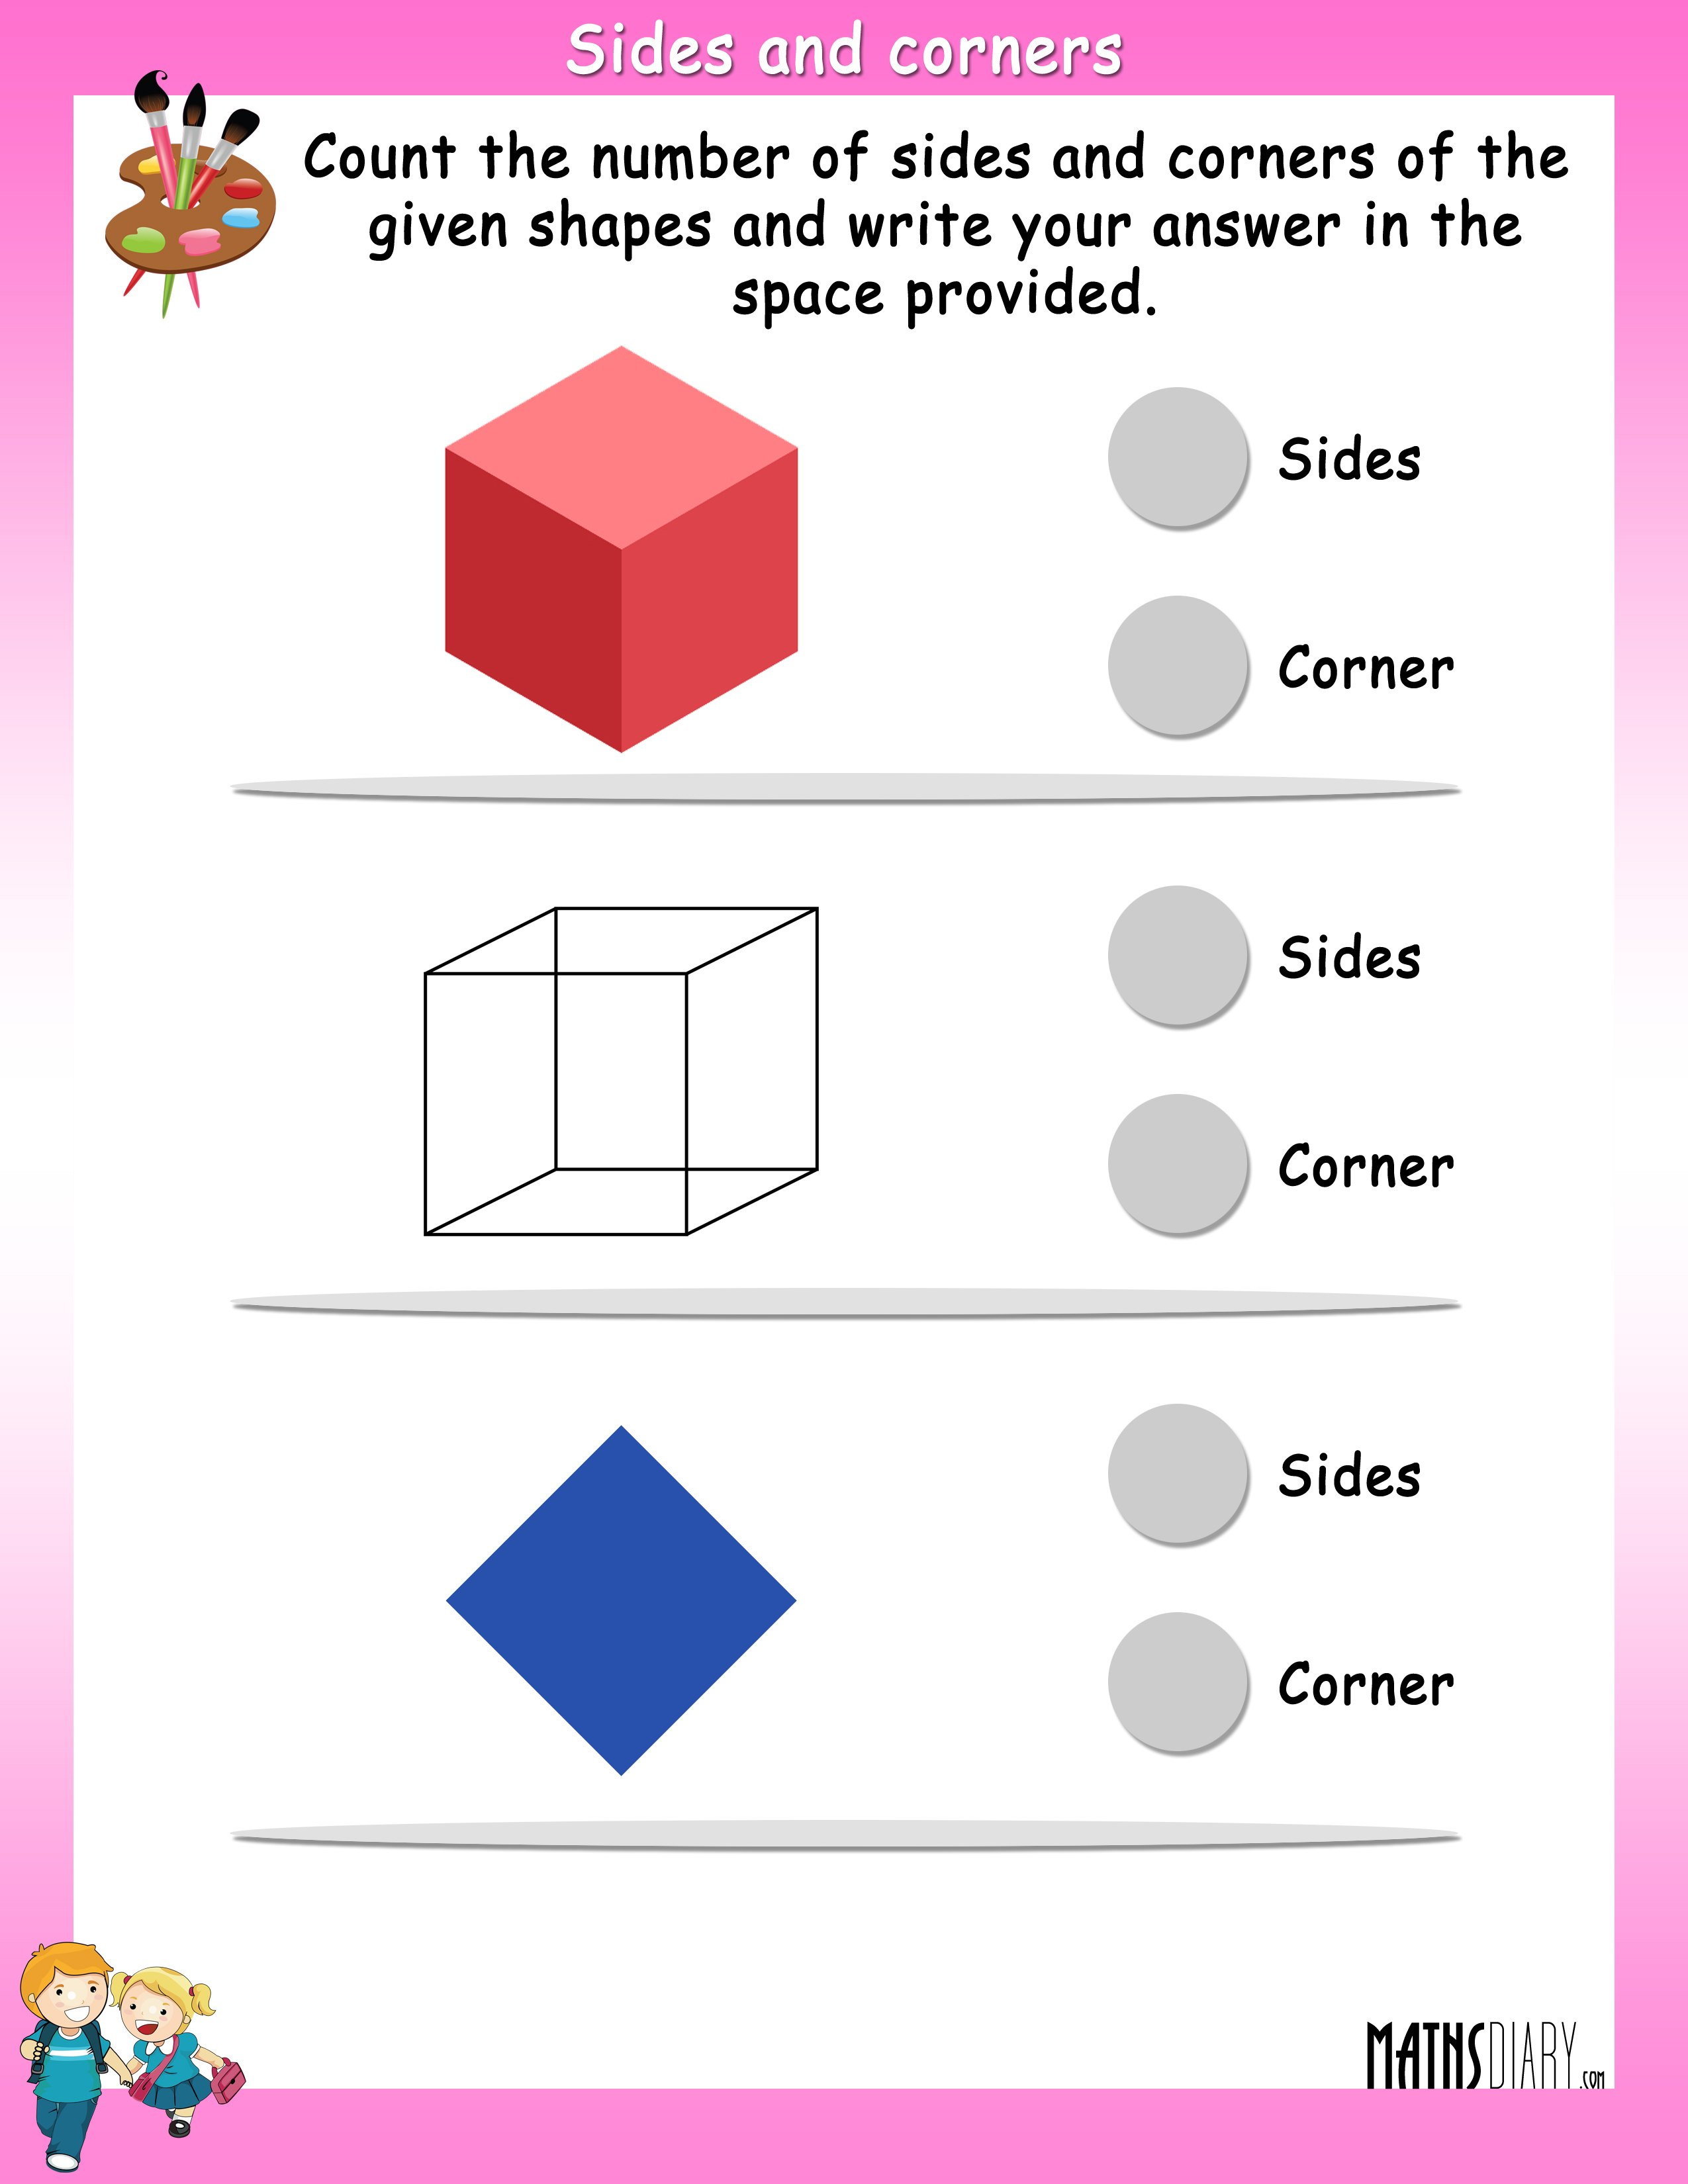 Count the Sides and Corners of given shapes